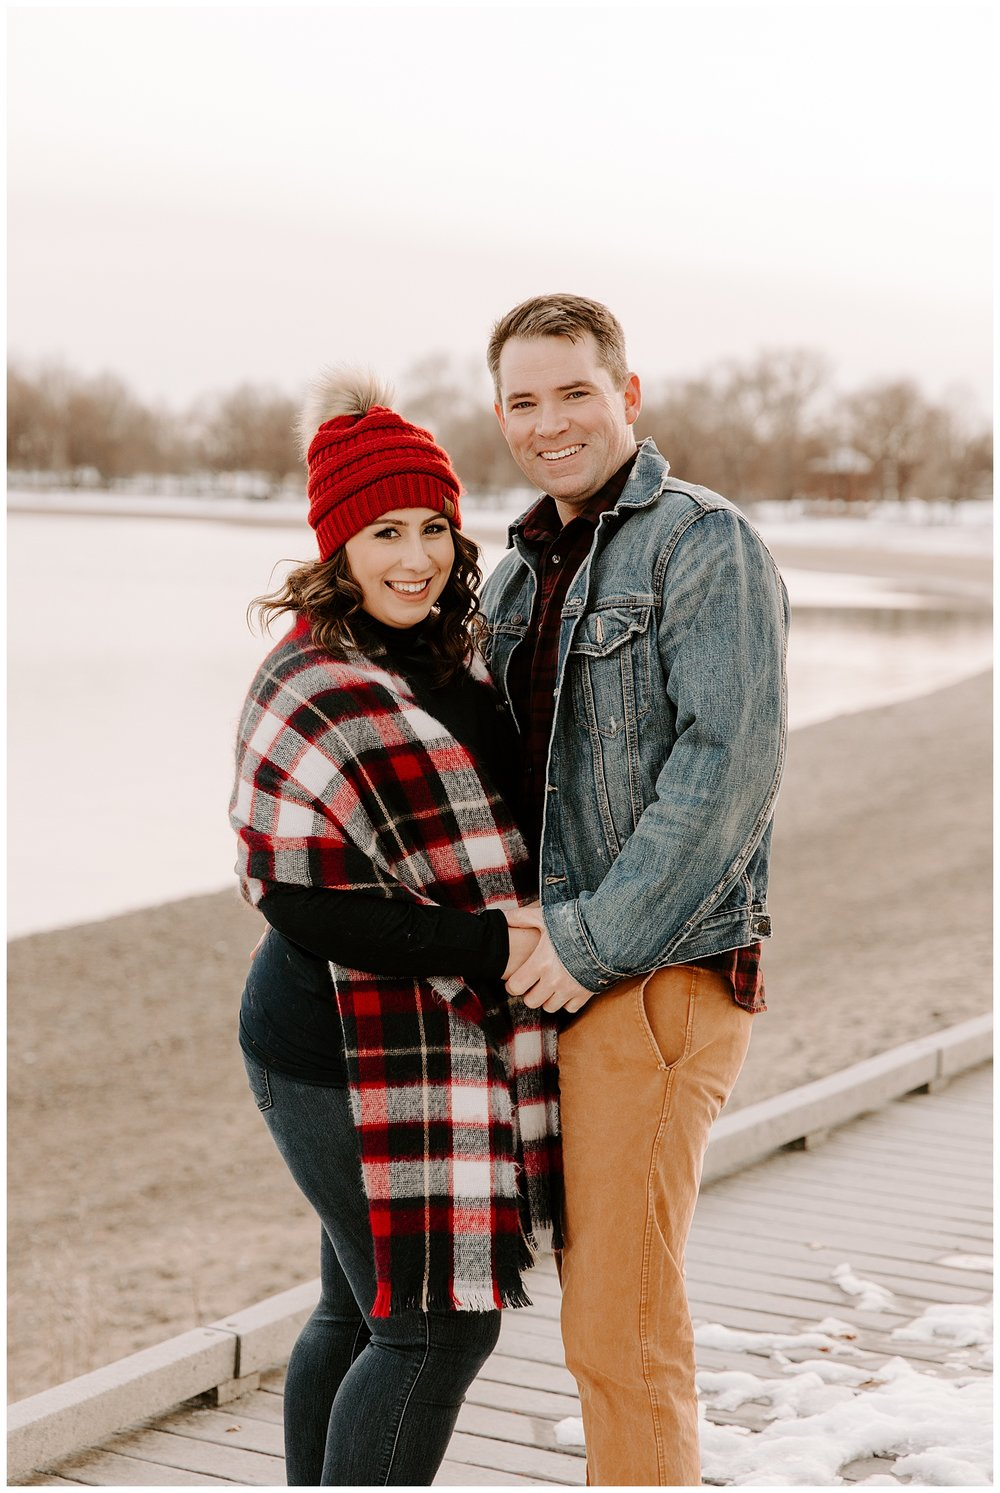 kevin-danielle-snow-winter-engagement-session-castle-island-boston10.jpg